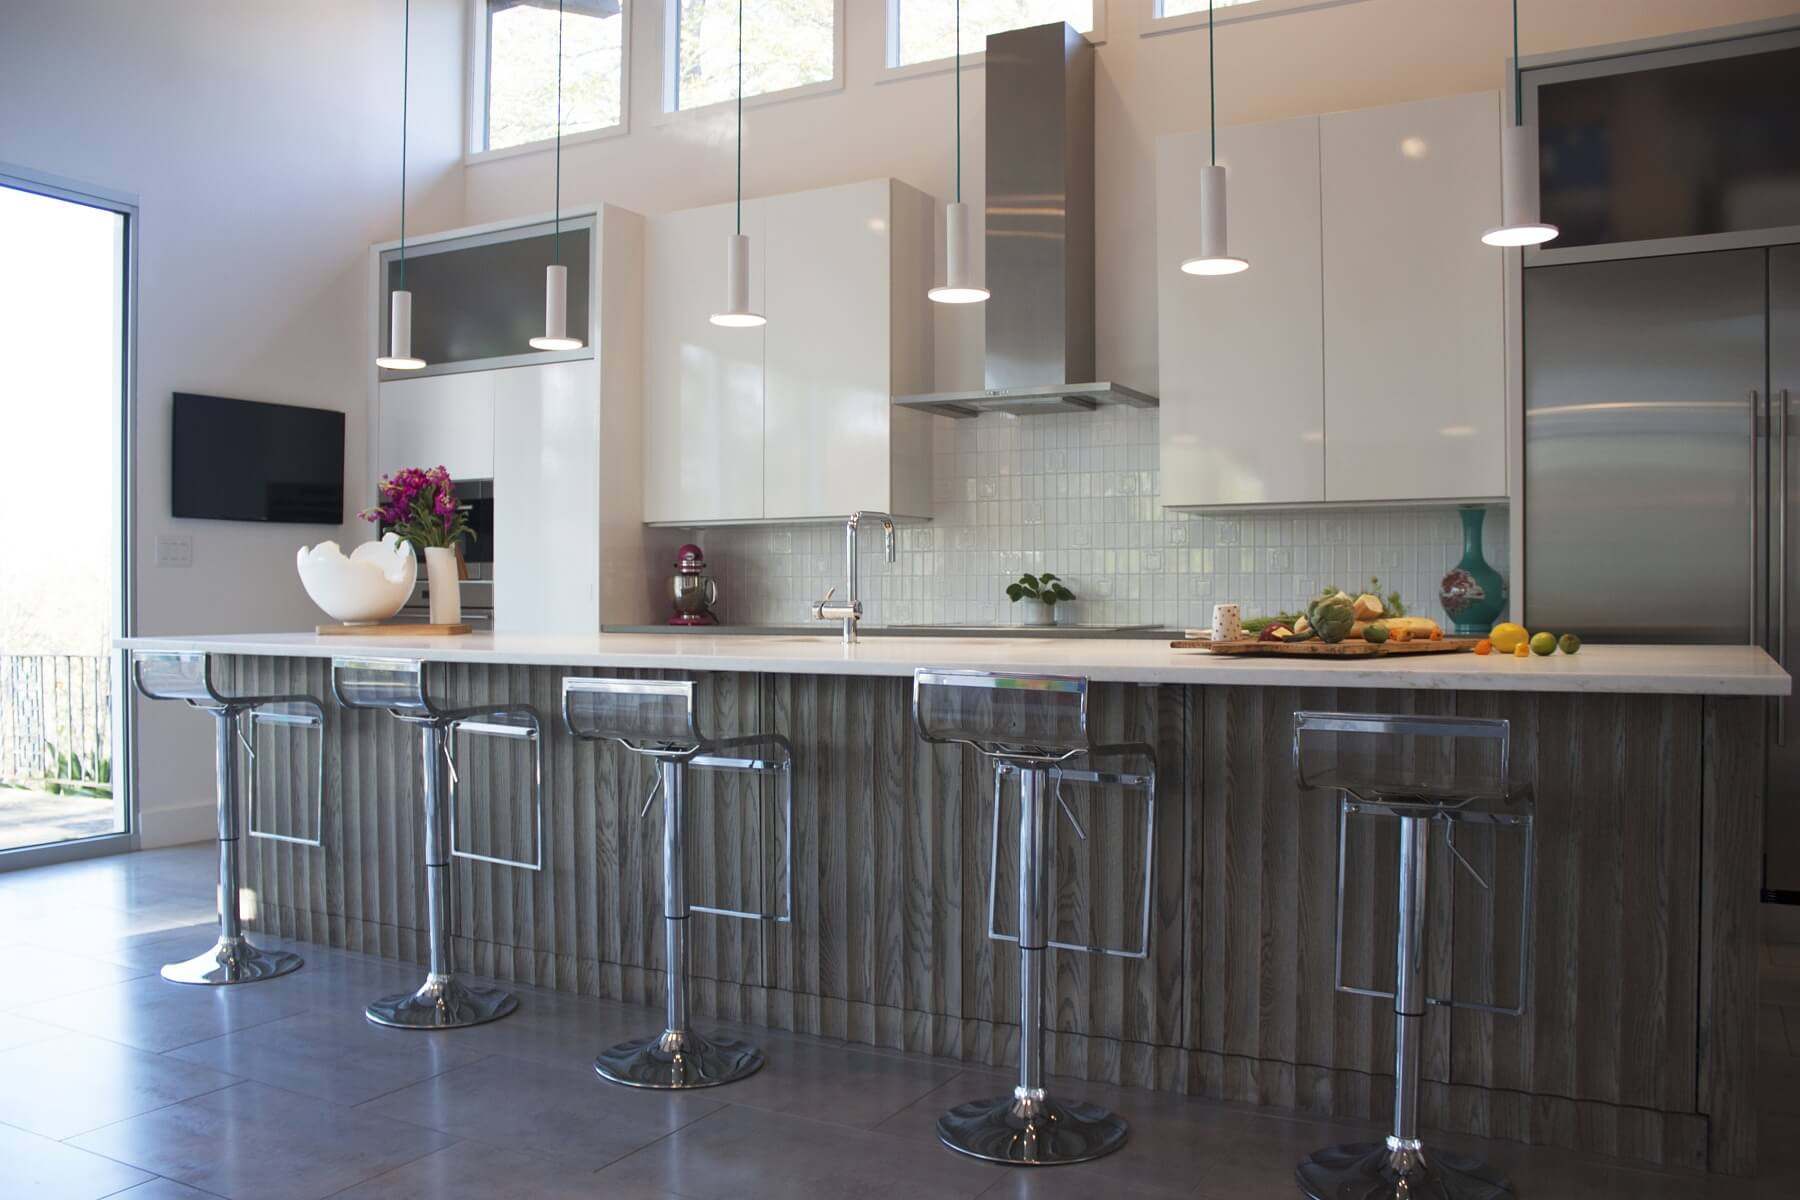 This cavernous kitchen is thoroughly modern with its gleaming surfaces and clean lines. Image: Anna Mitchell